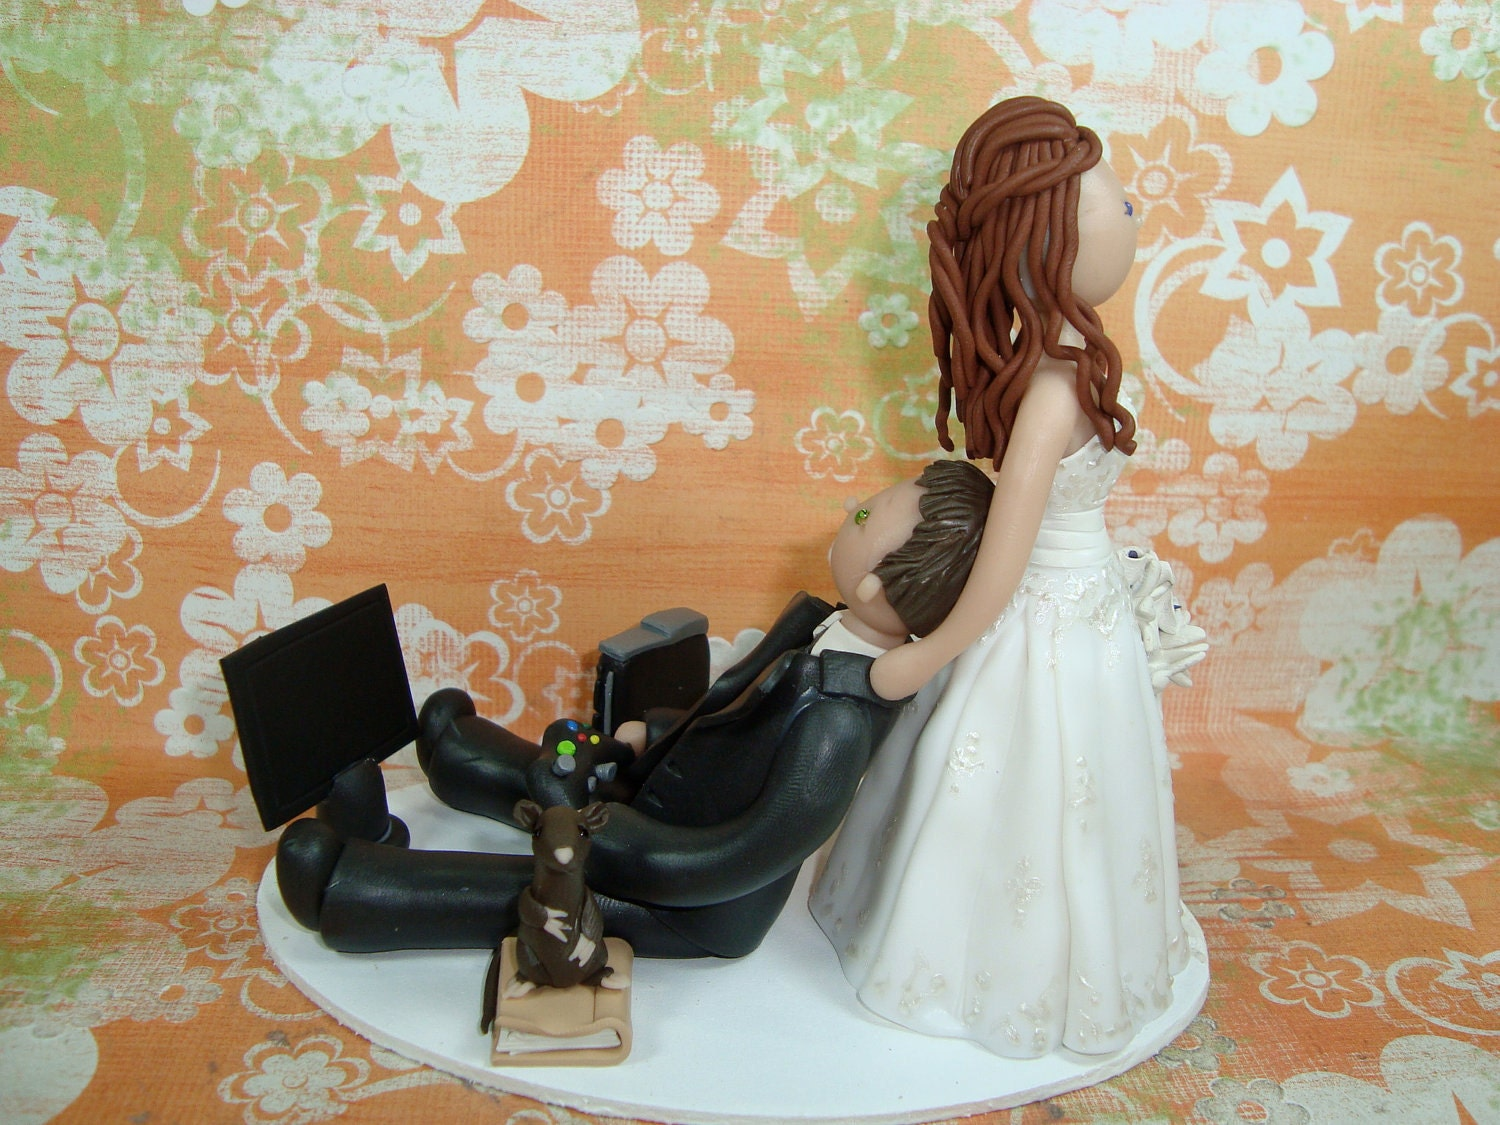 Pin Dragging Bride And Groom To Altar Cake on Pinterest